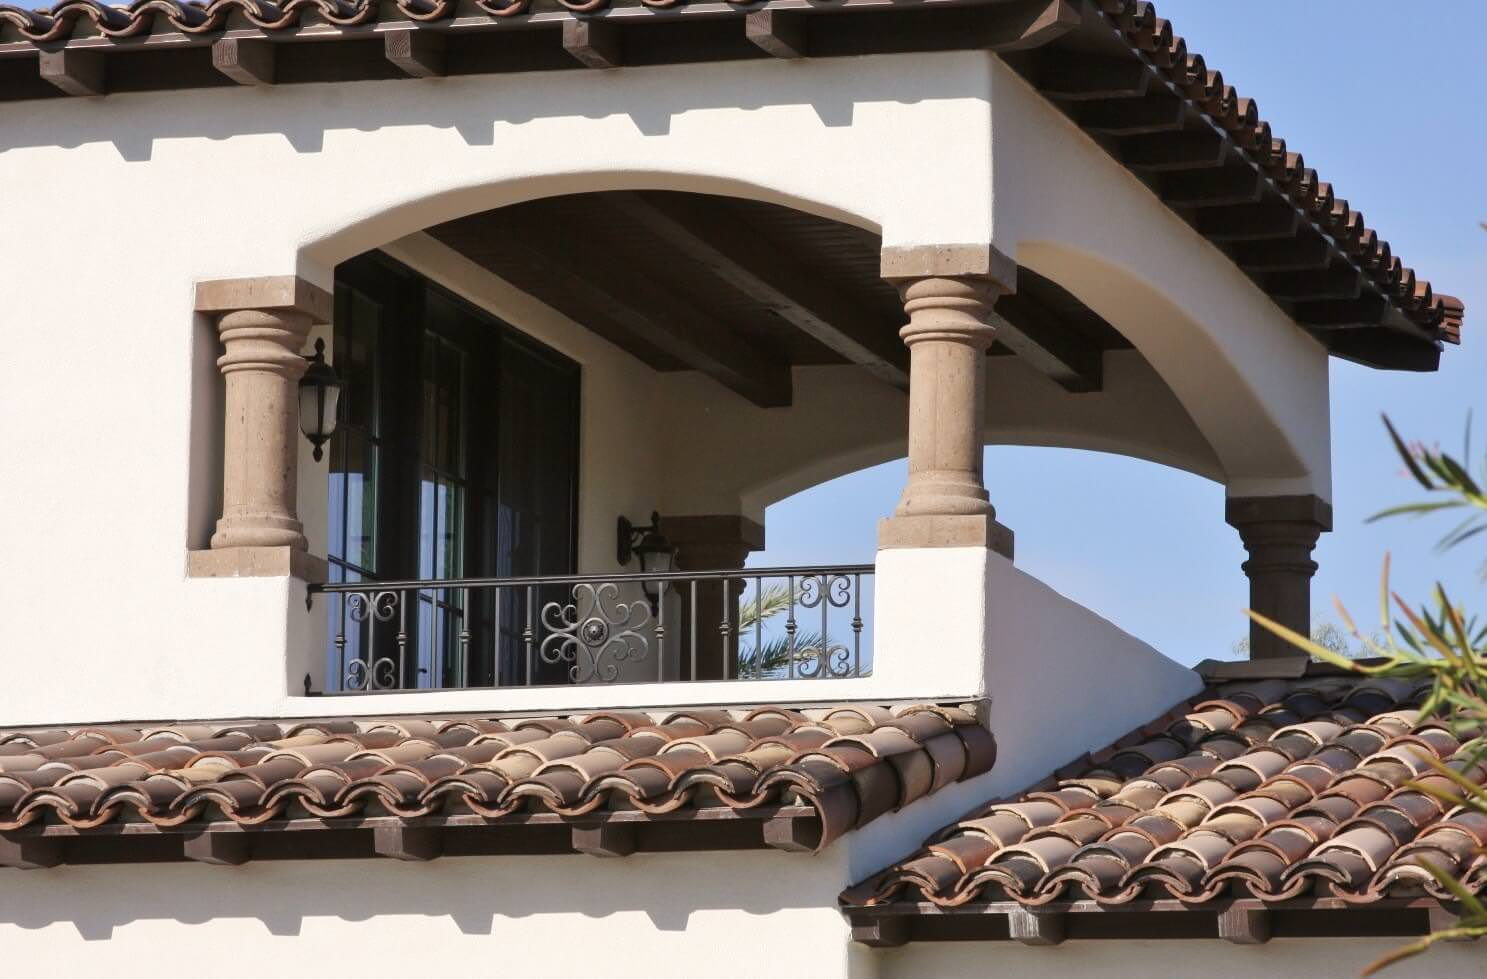 6-Tuscan-Capital-Columns-with-Smooth-Shafts-at-Upper-Level-Terrace-in-Tobacco-Cantera-Stone